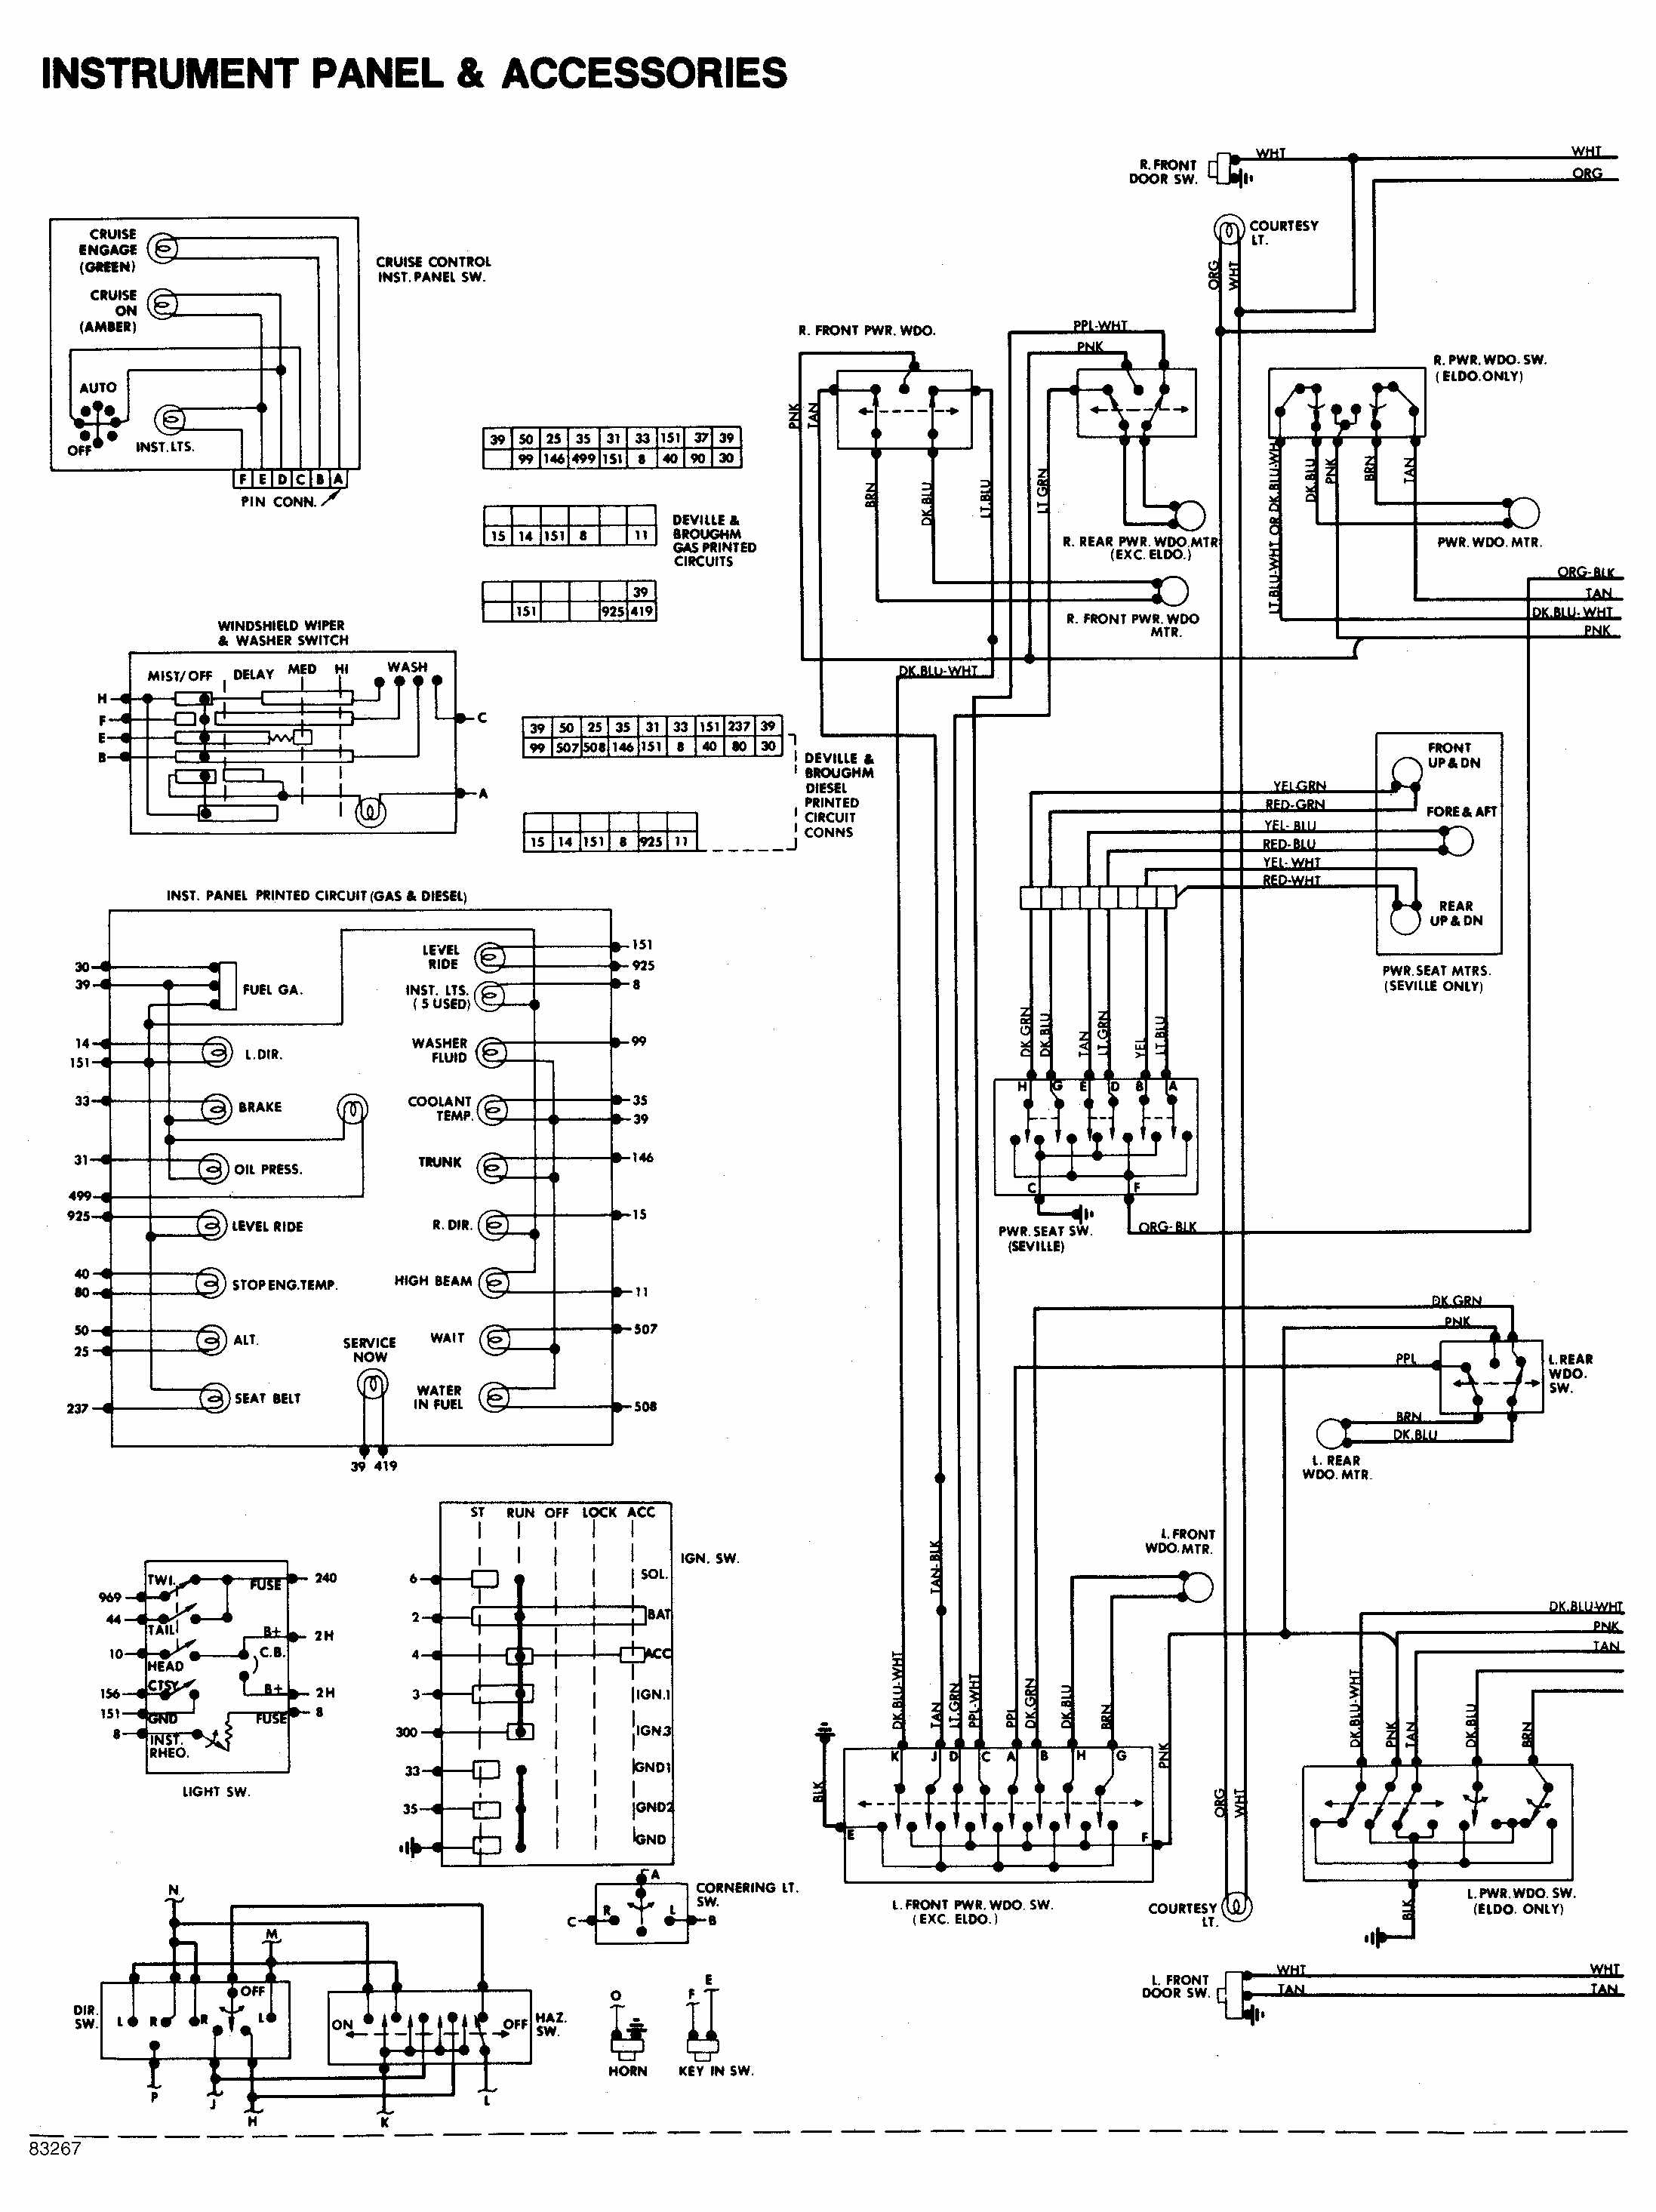 1959 Cadillac Wiring Diagram Simple Guide About 1971 Vw Bus Fuse Box Radio Chevy Diagrams